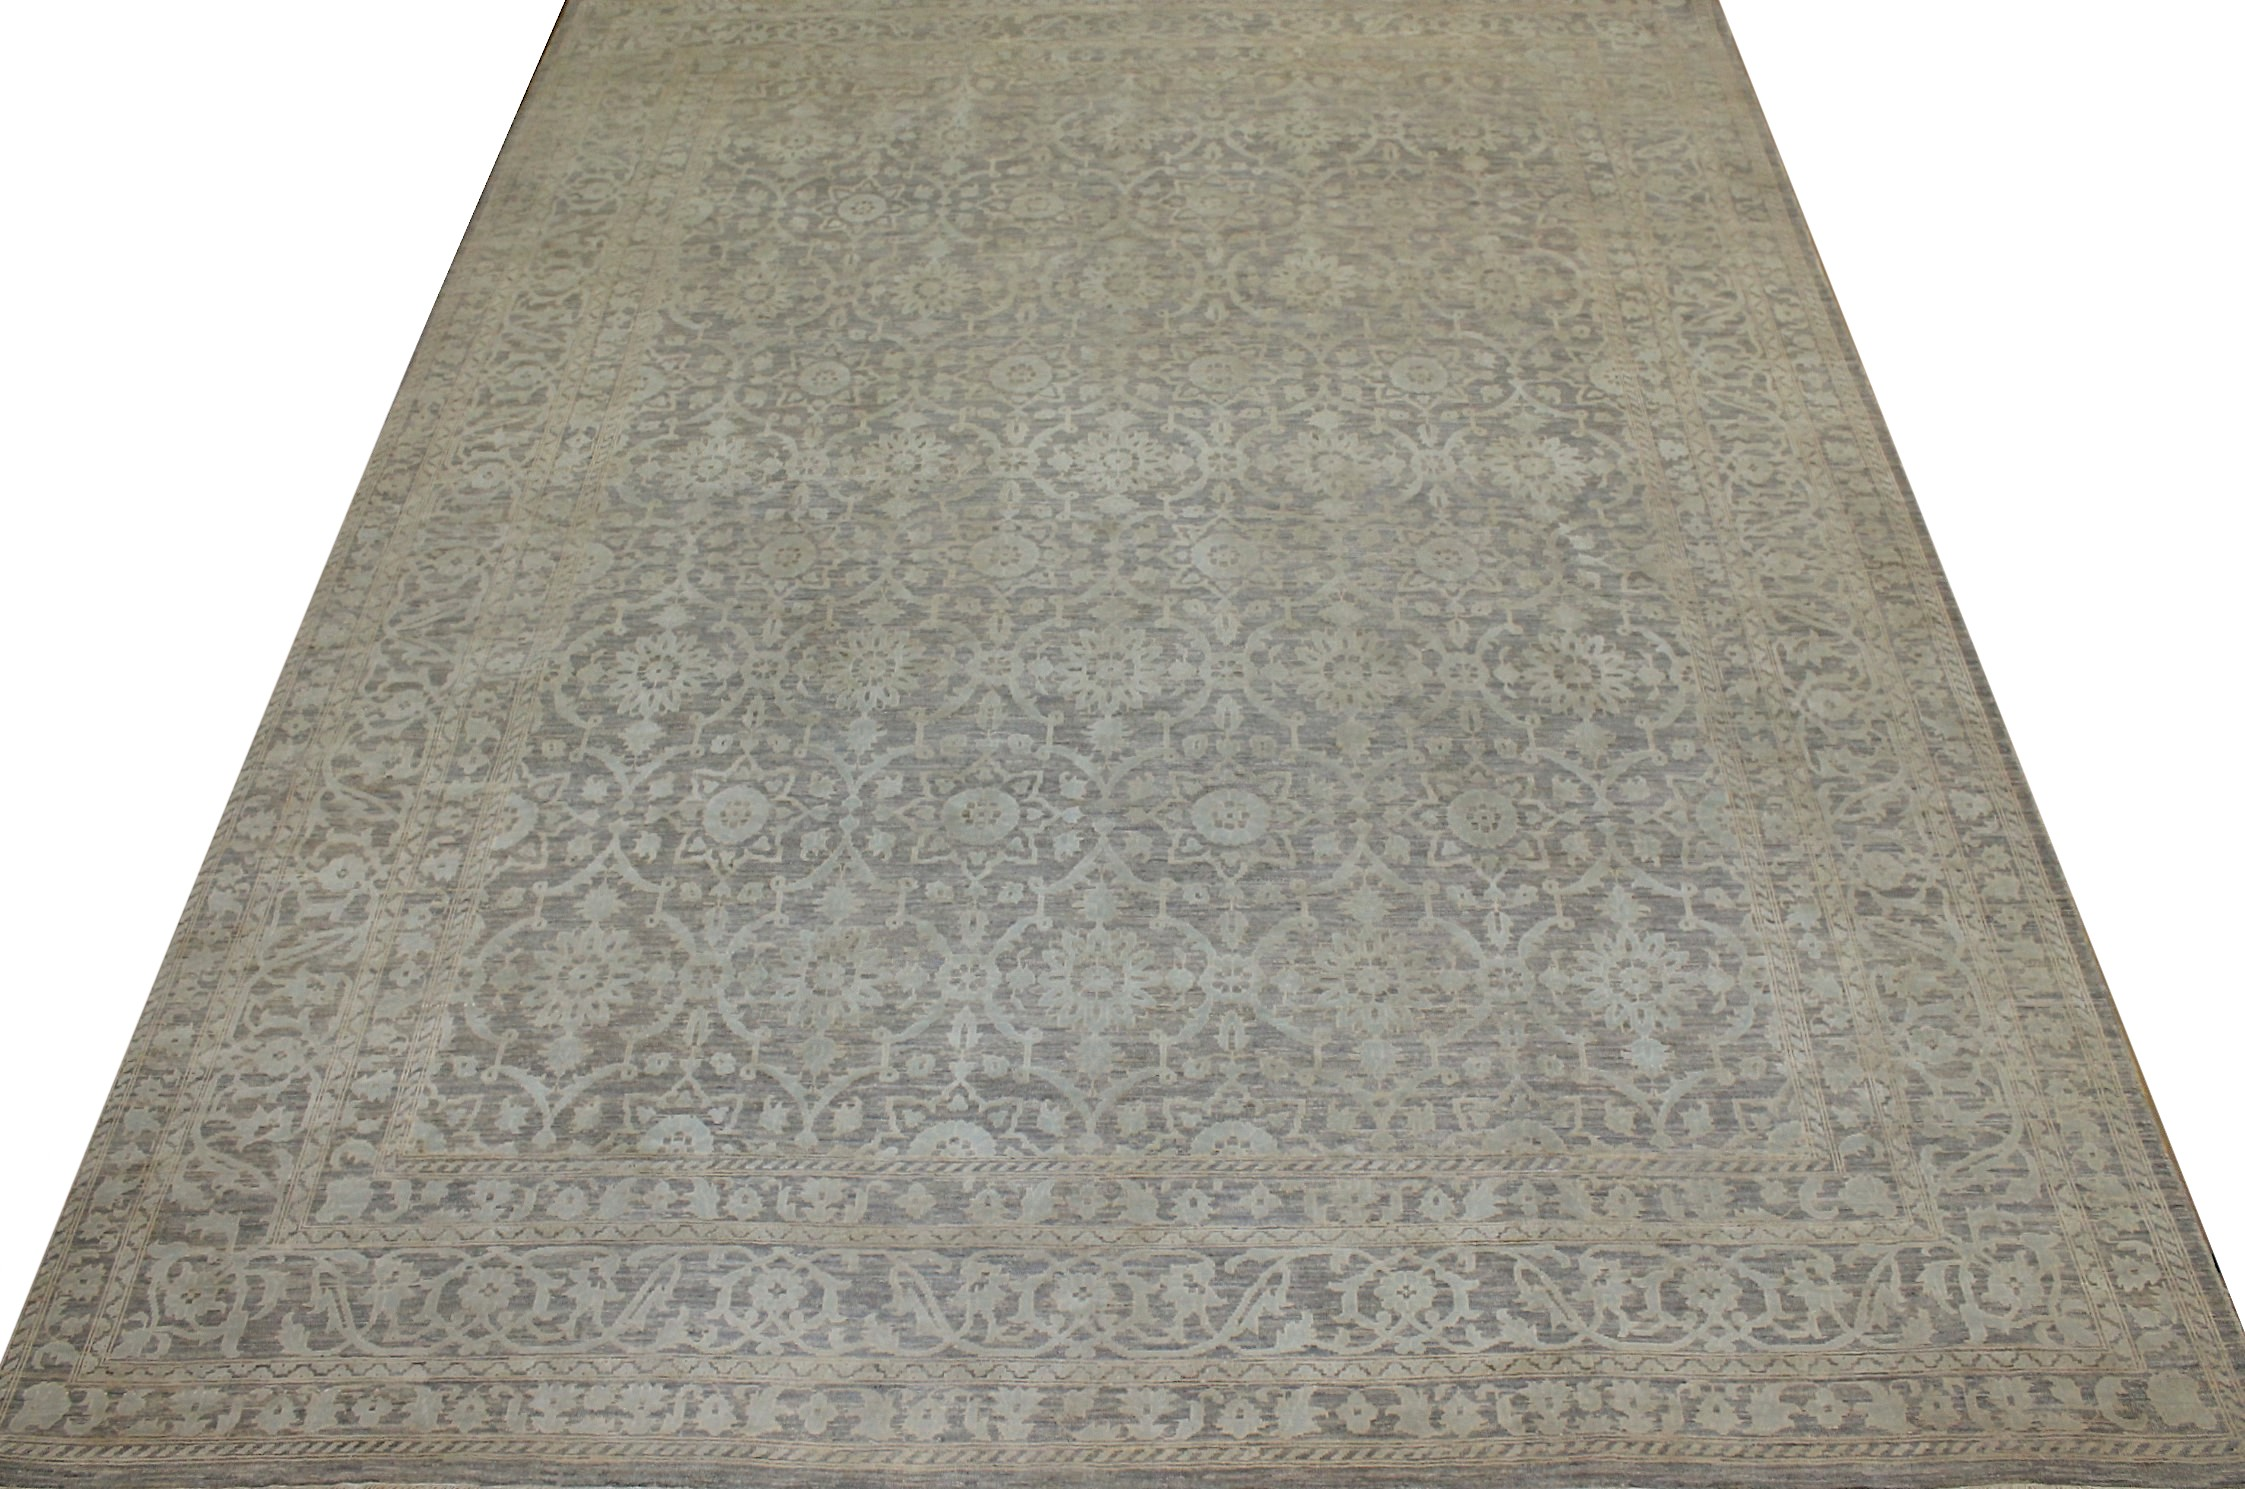 9x12 Contemporary Hand Knotted Wool Area Rug - MR021823